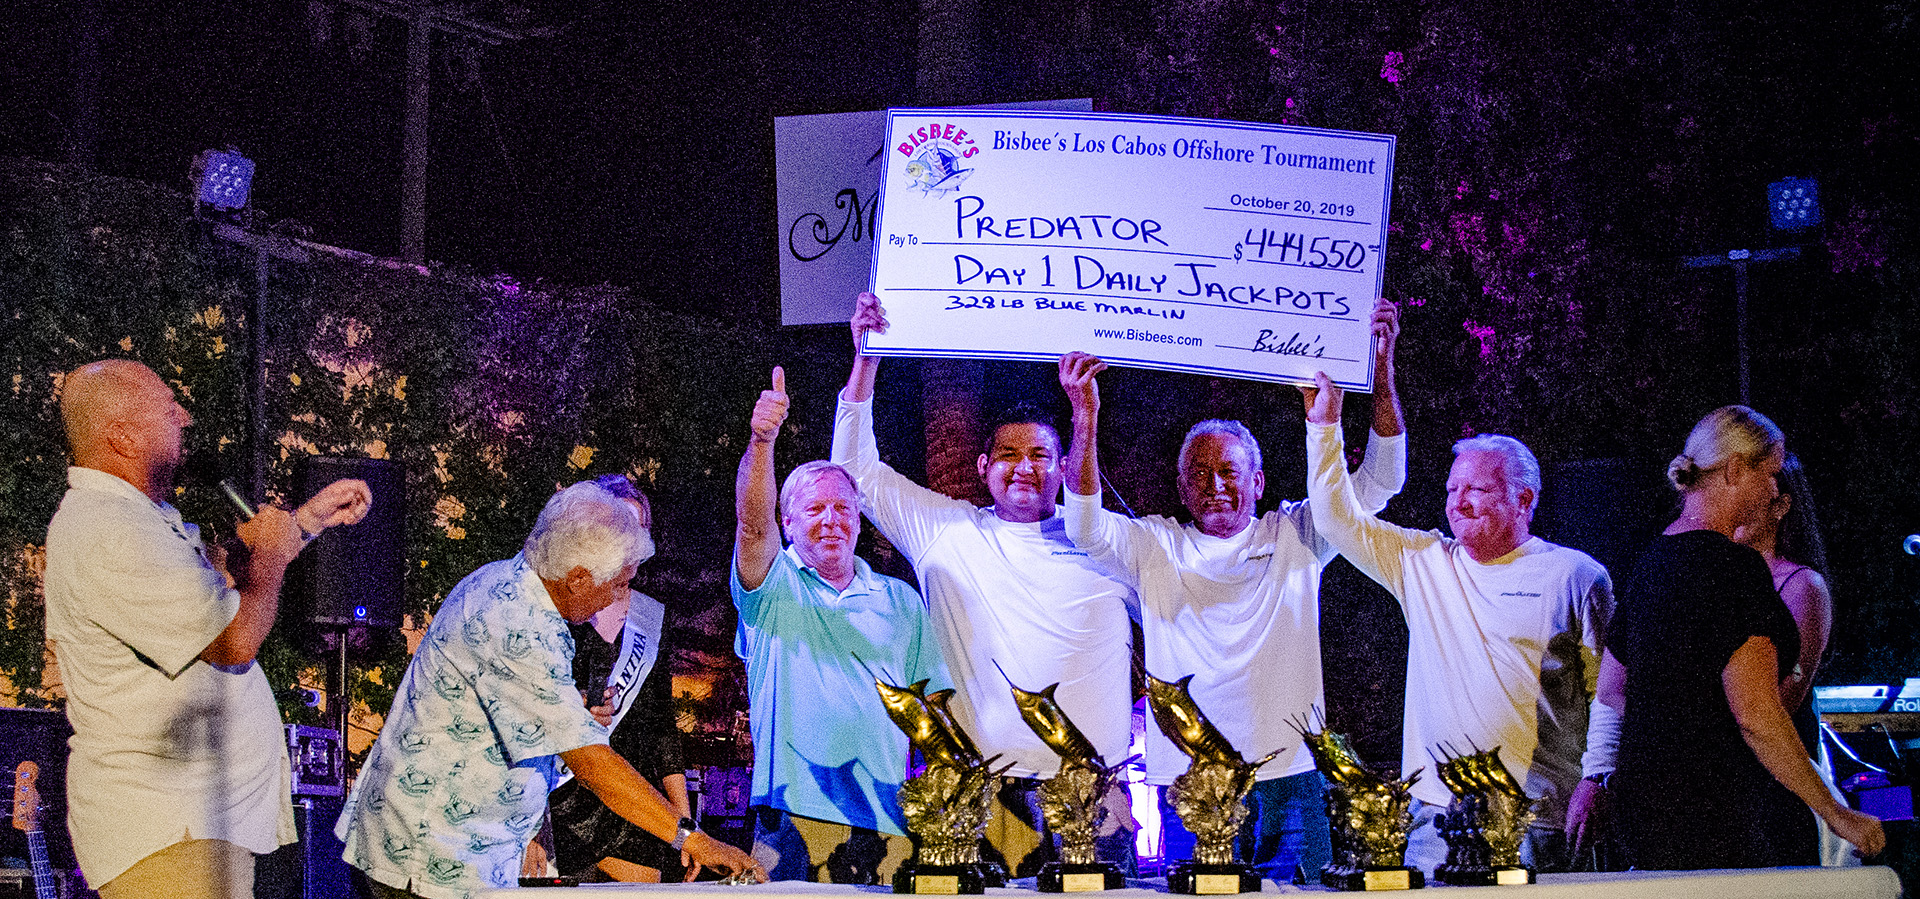 LCO Day One winner receives $444,550 for Day 1 Daily Jackpot for a 328 Blue Marlin